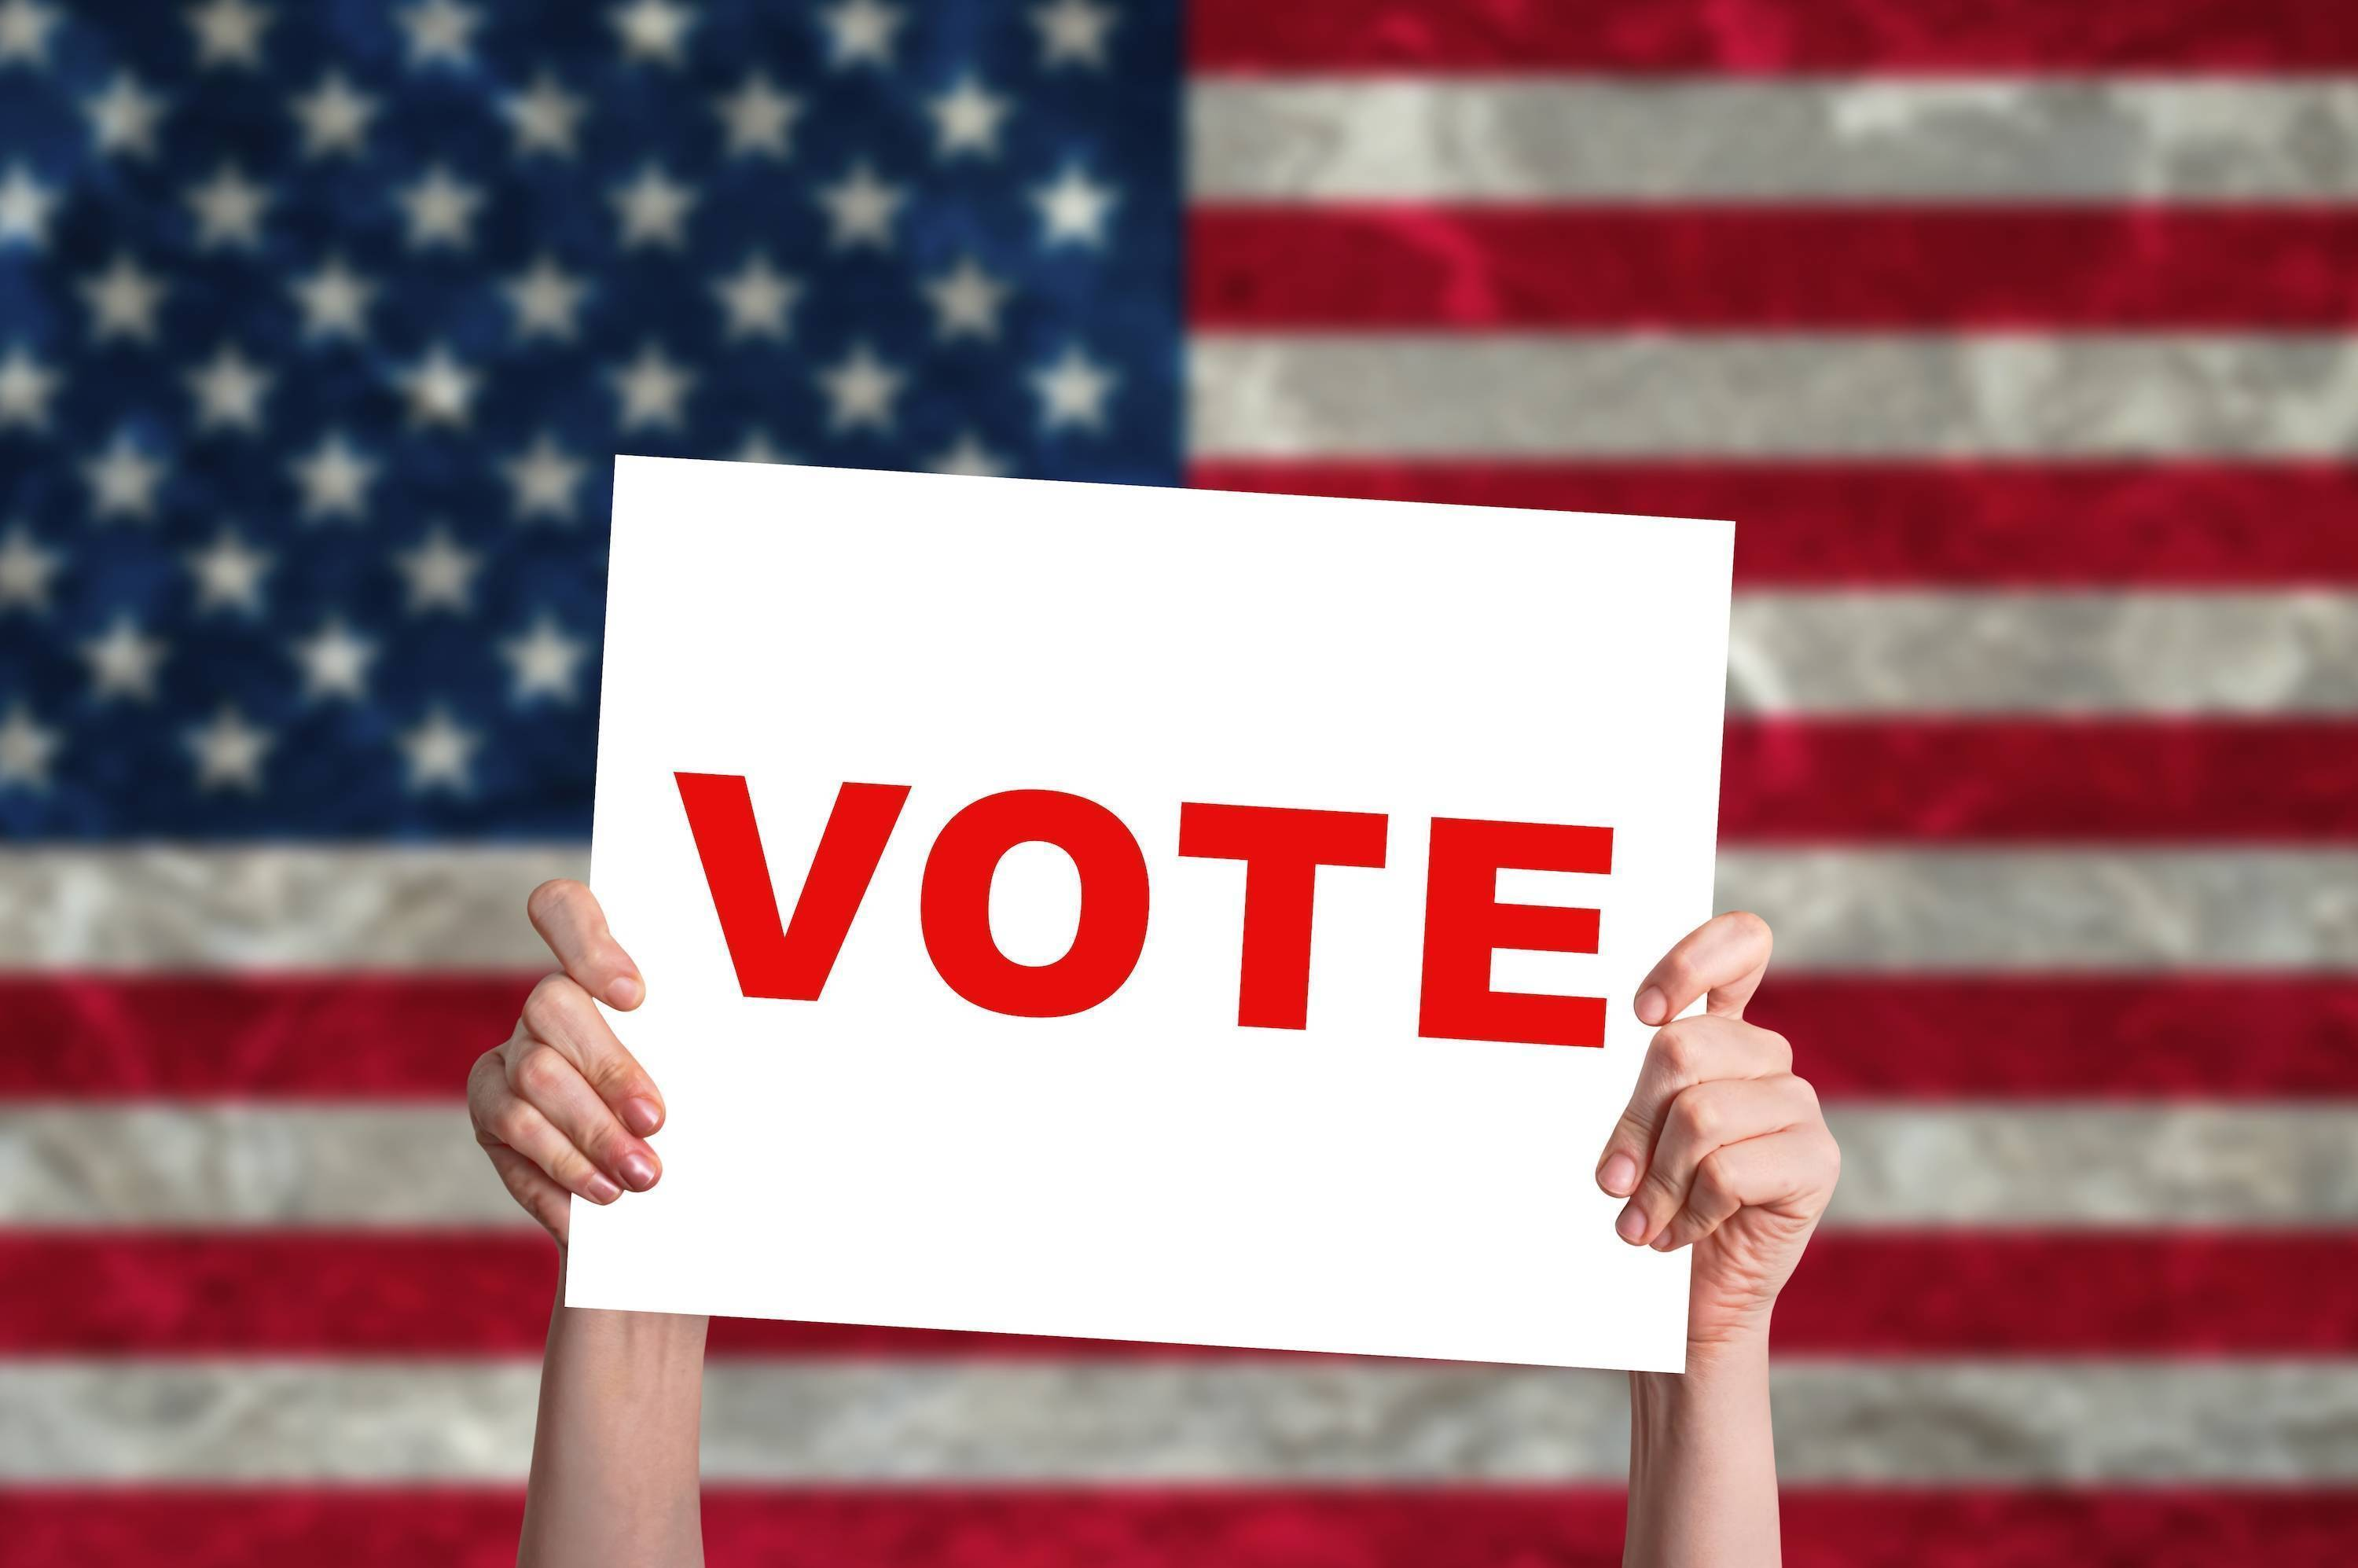 High School Students, It's Your Turn to Tell Adults Why Voting is Important